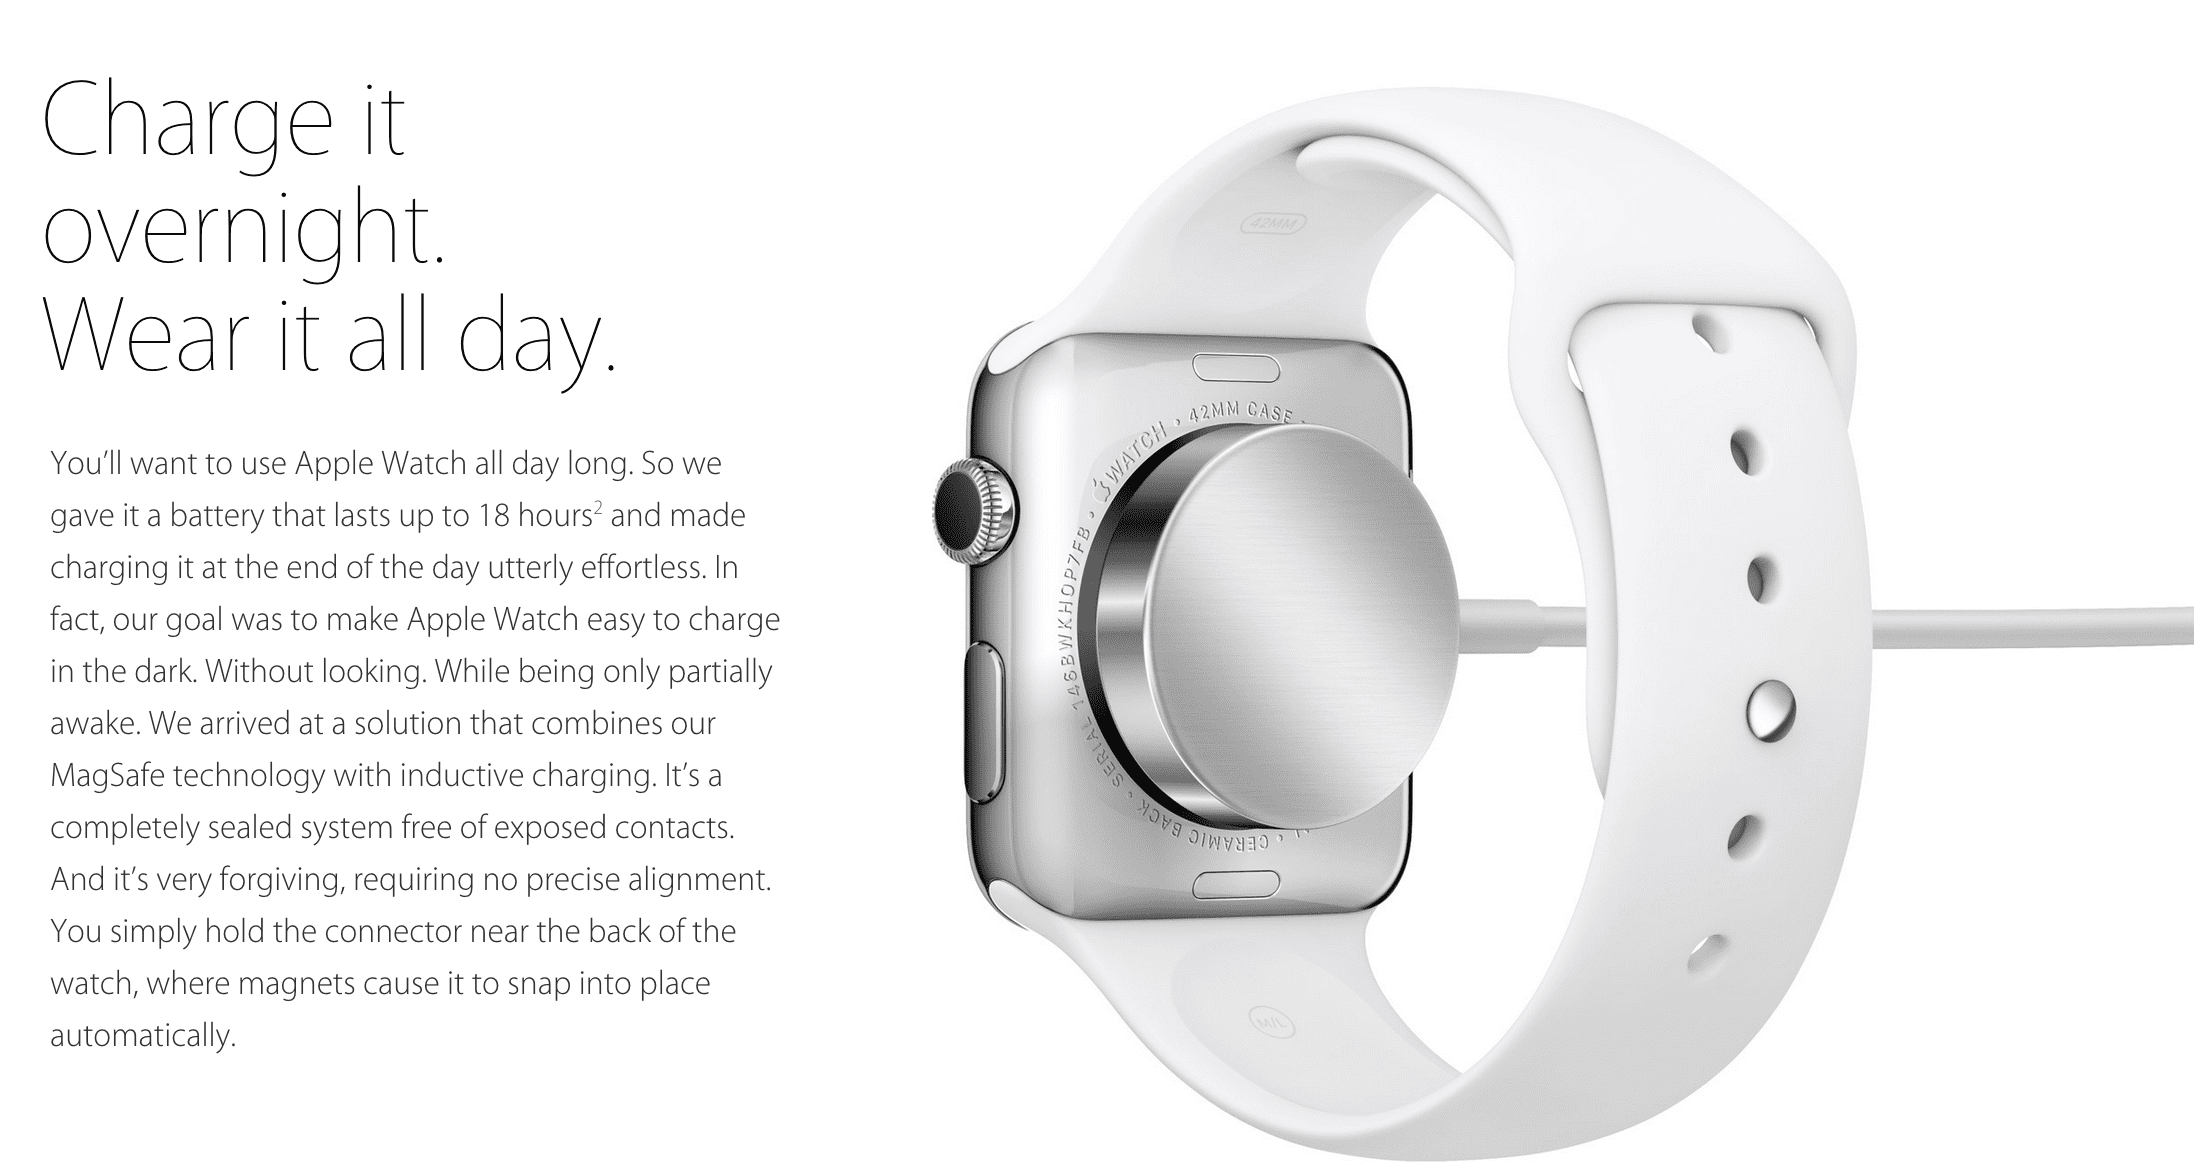 Apple Watch Charging Battery life